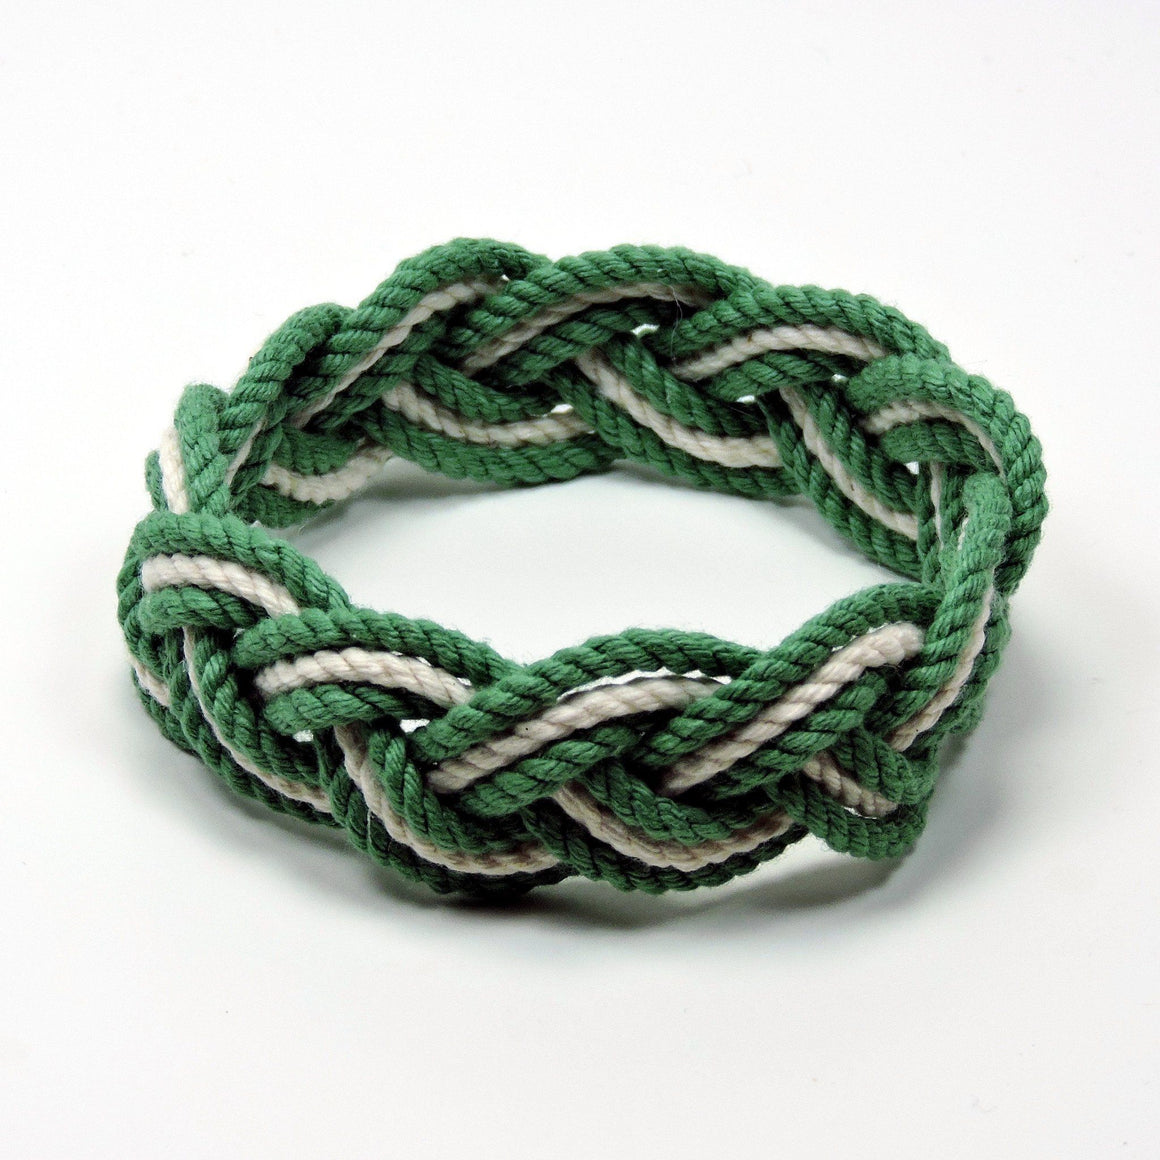 Striped Sailor Bracelet, Tropical Colors w/ White Stripe - Mystic Knotwork nautical knot